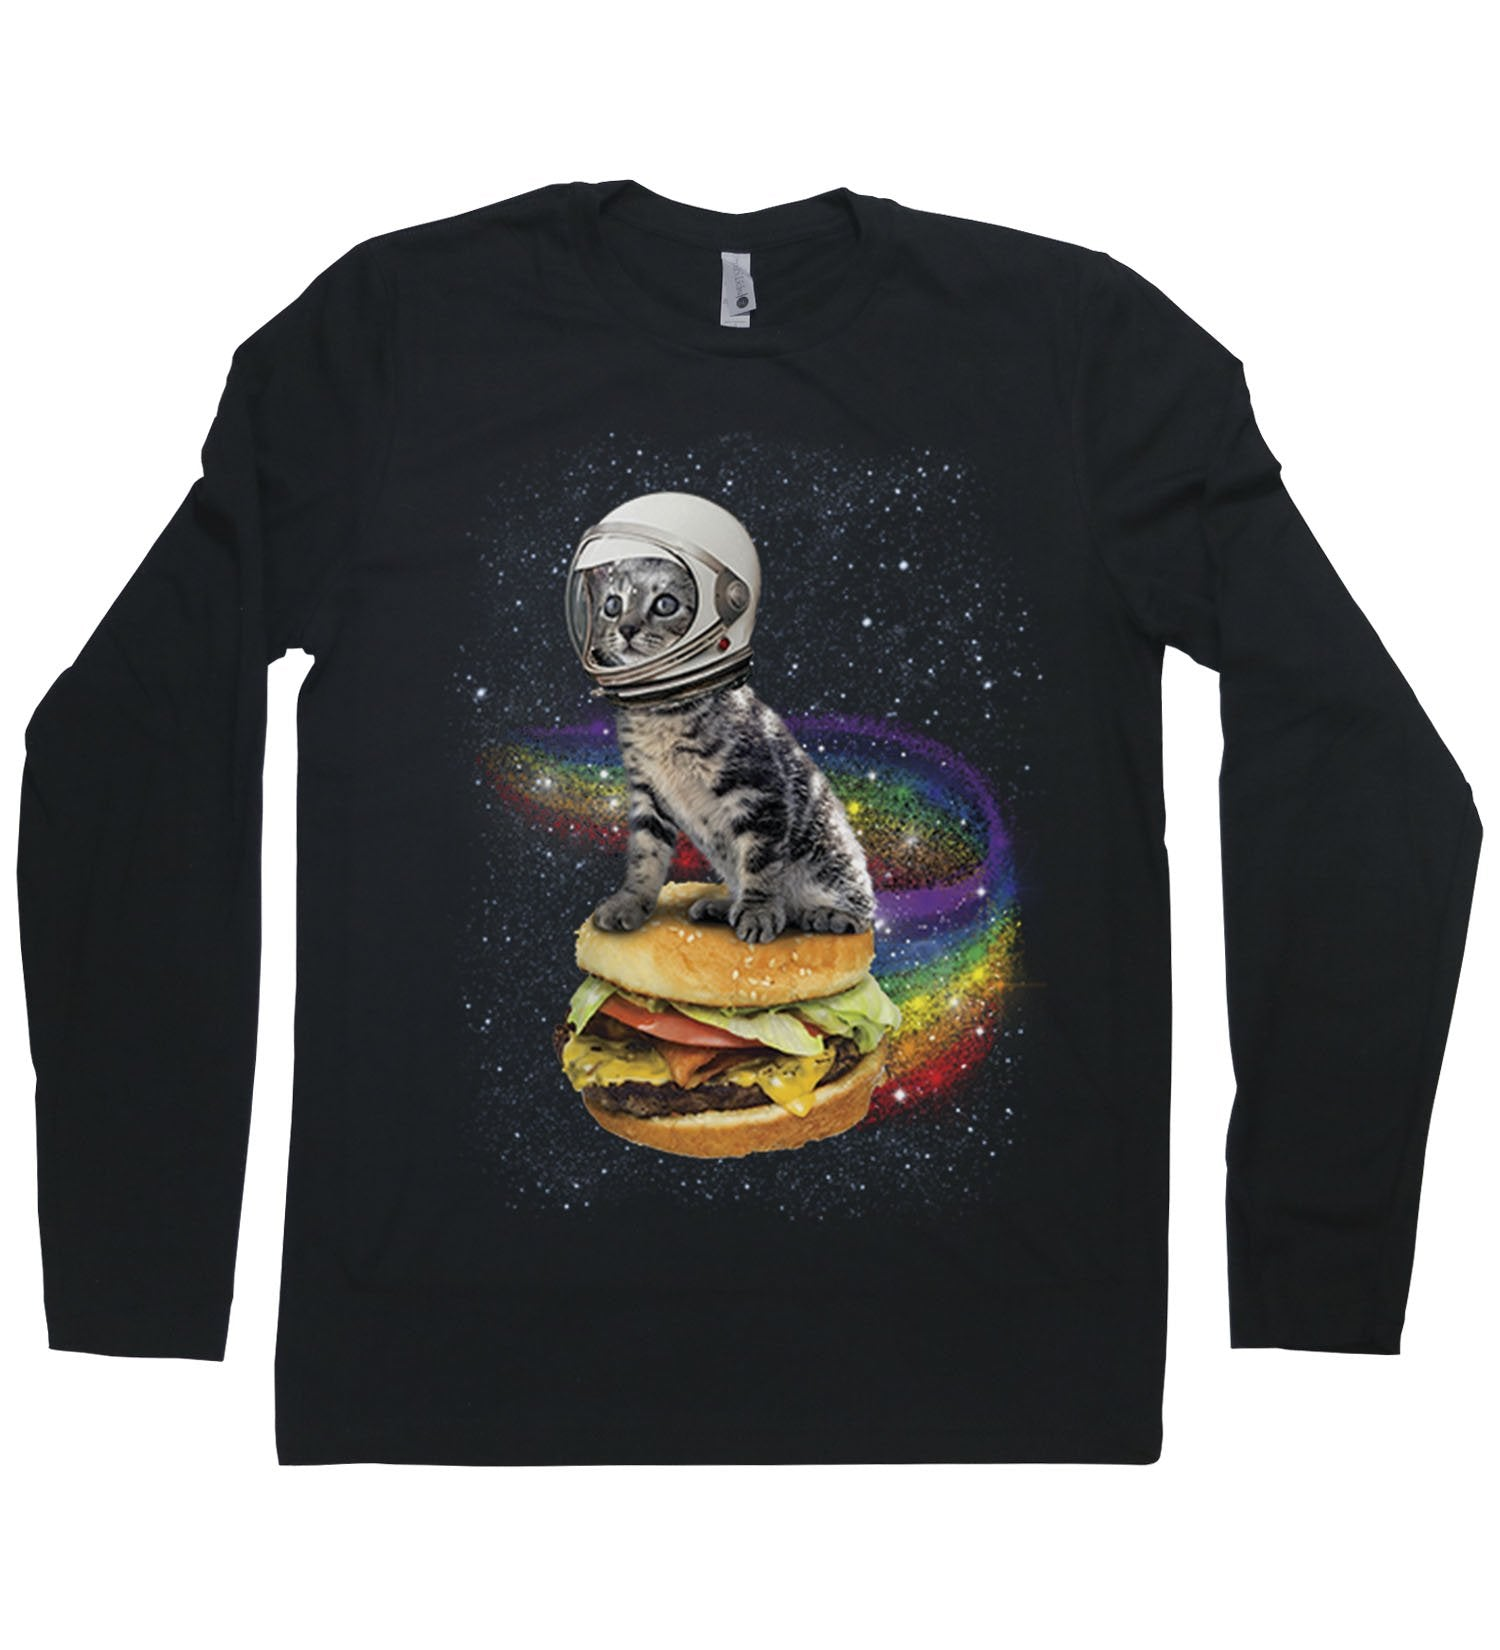 A cat with an astronaut helmet riding a cheeseburger through space with a rainbow trailing behind